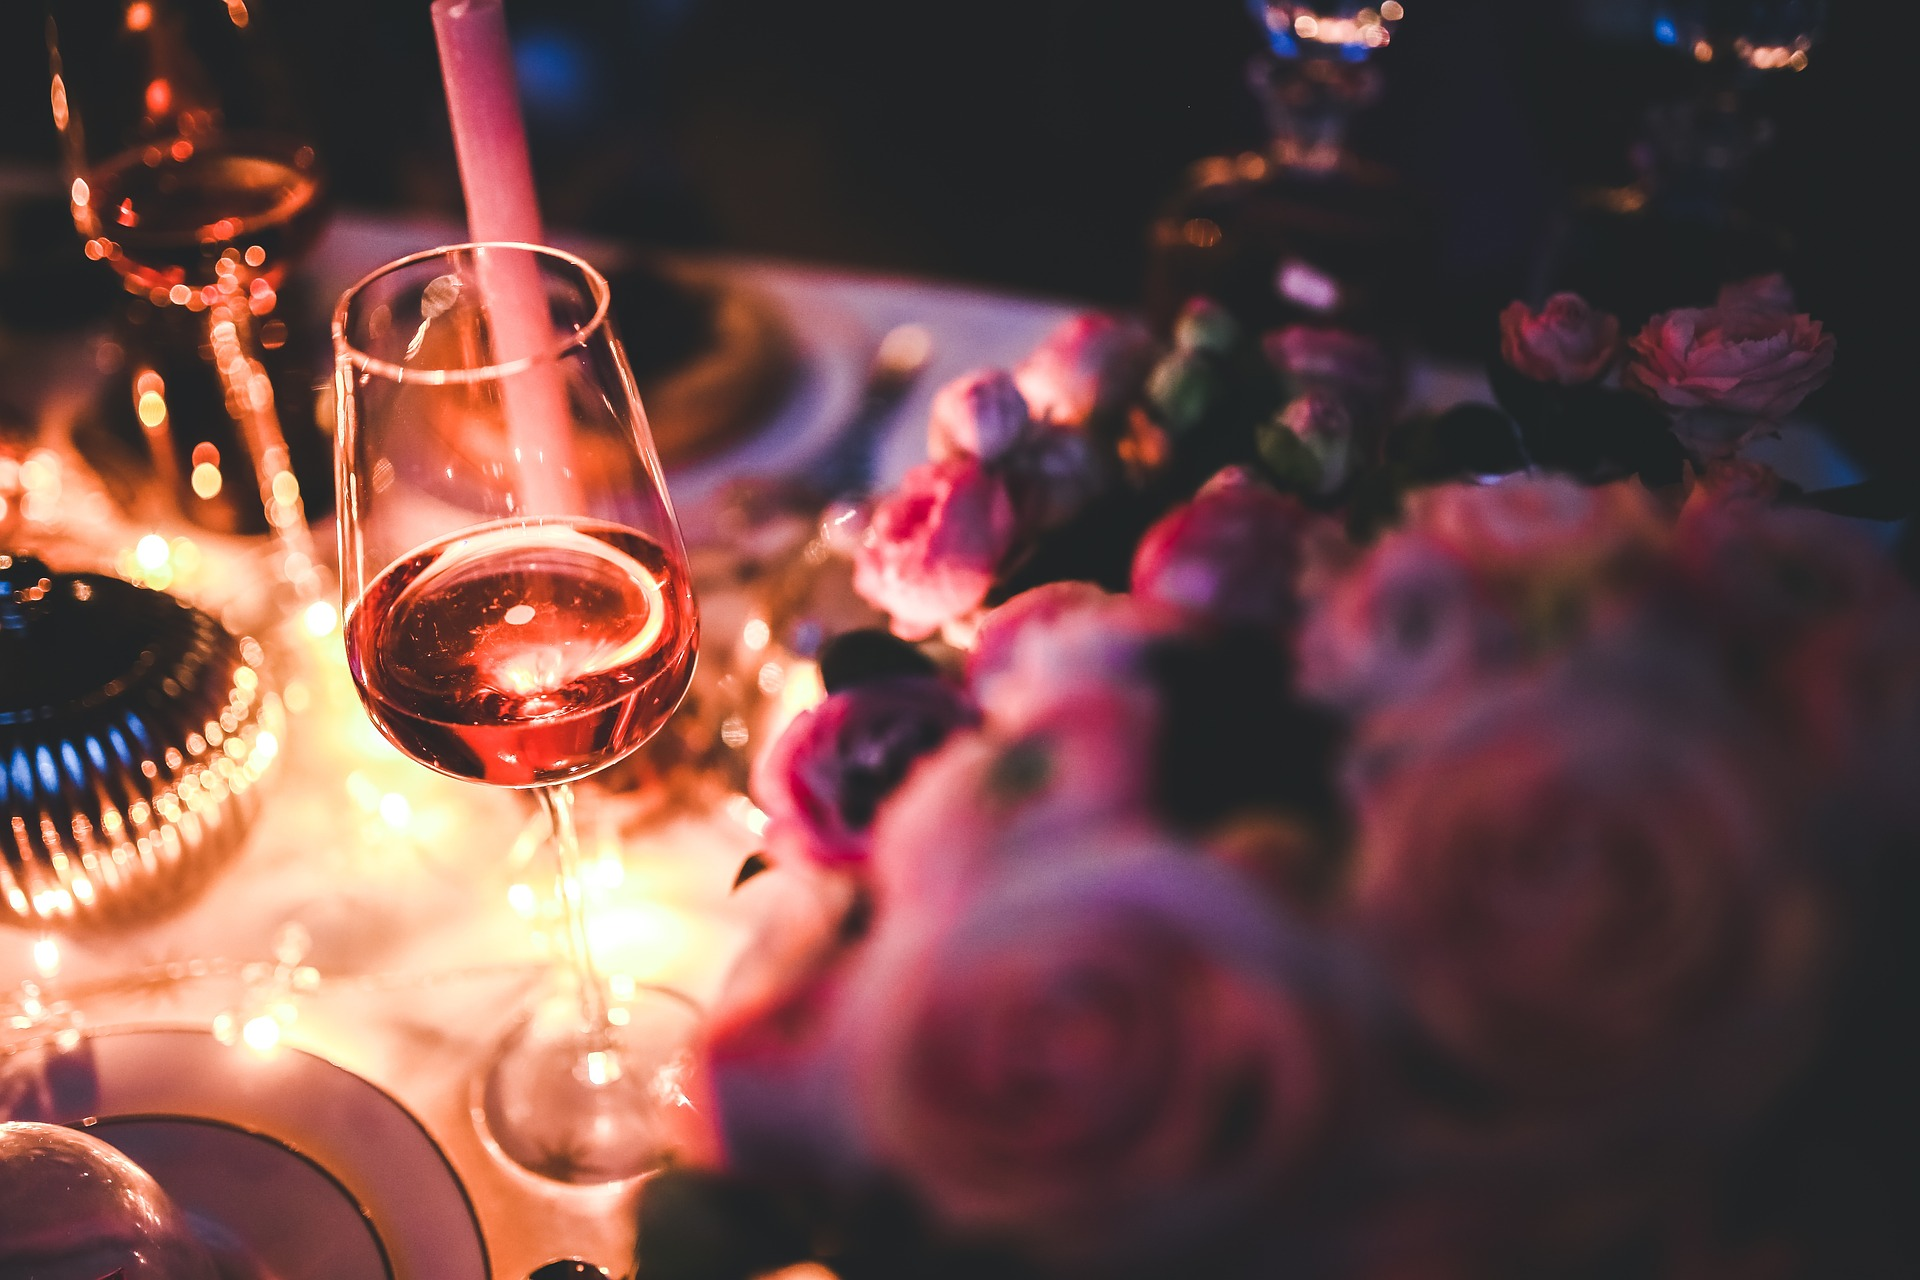 romantic dinner - valentine's day